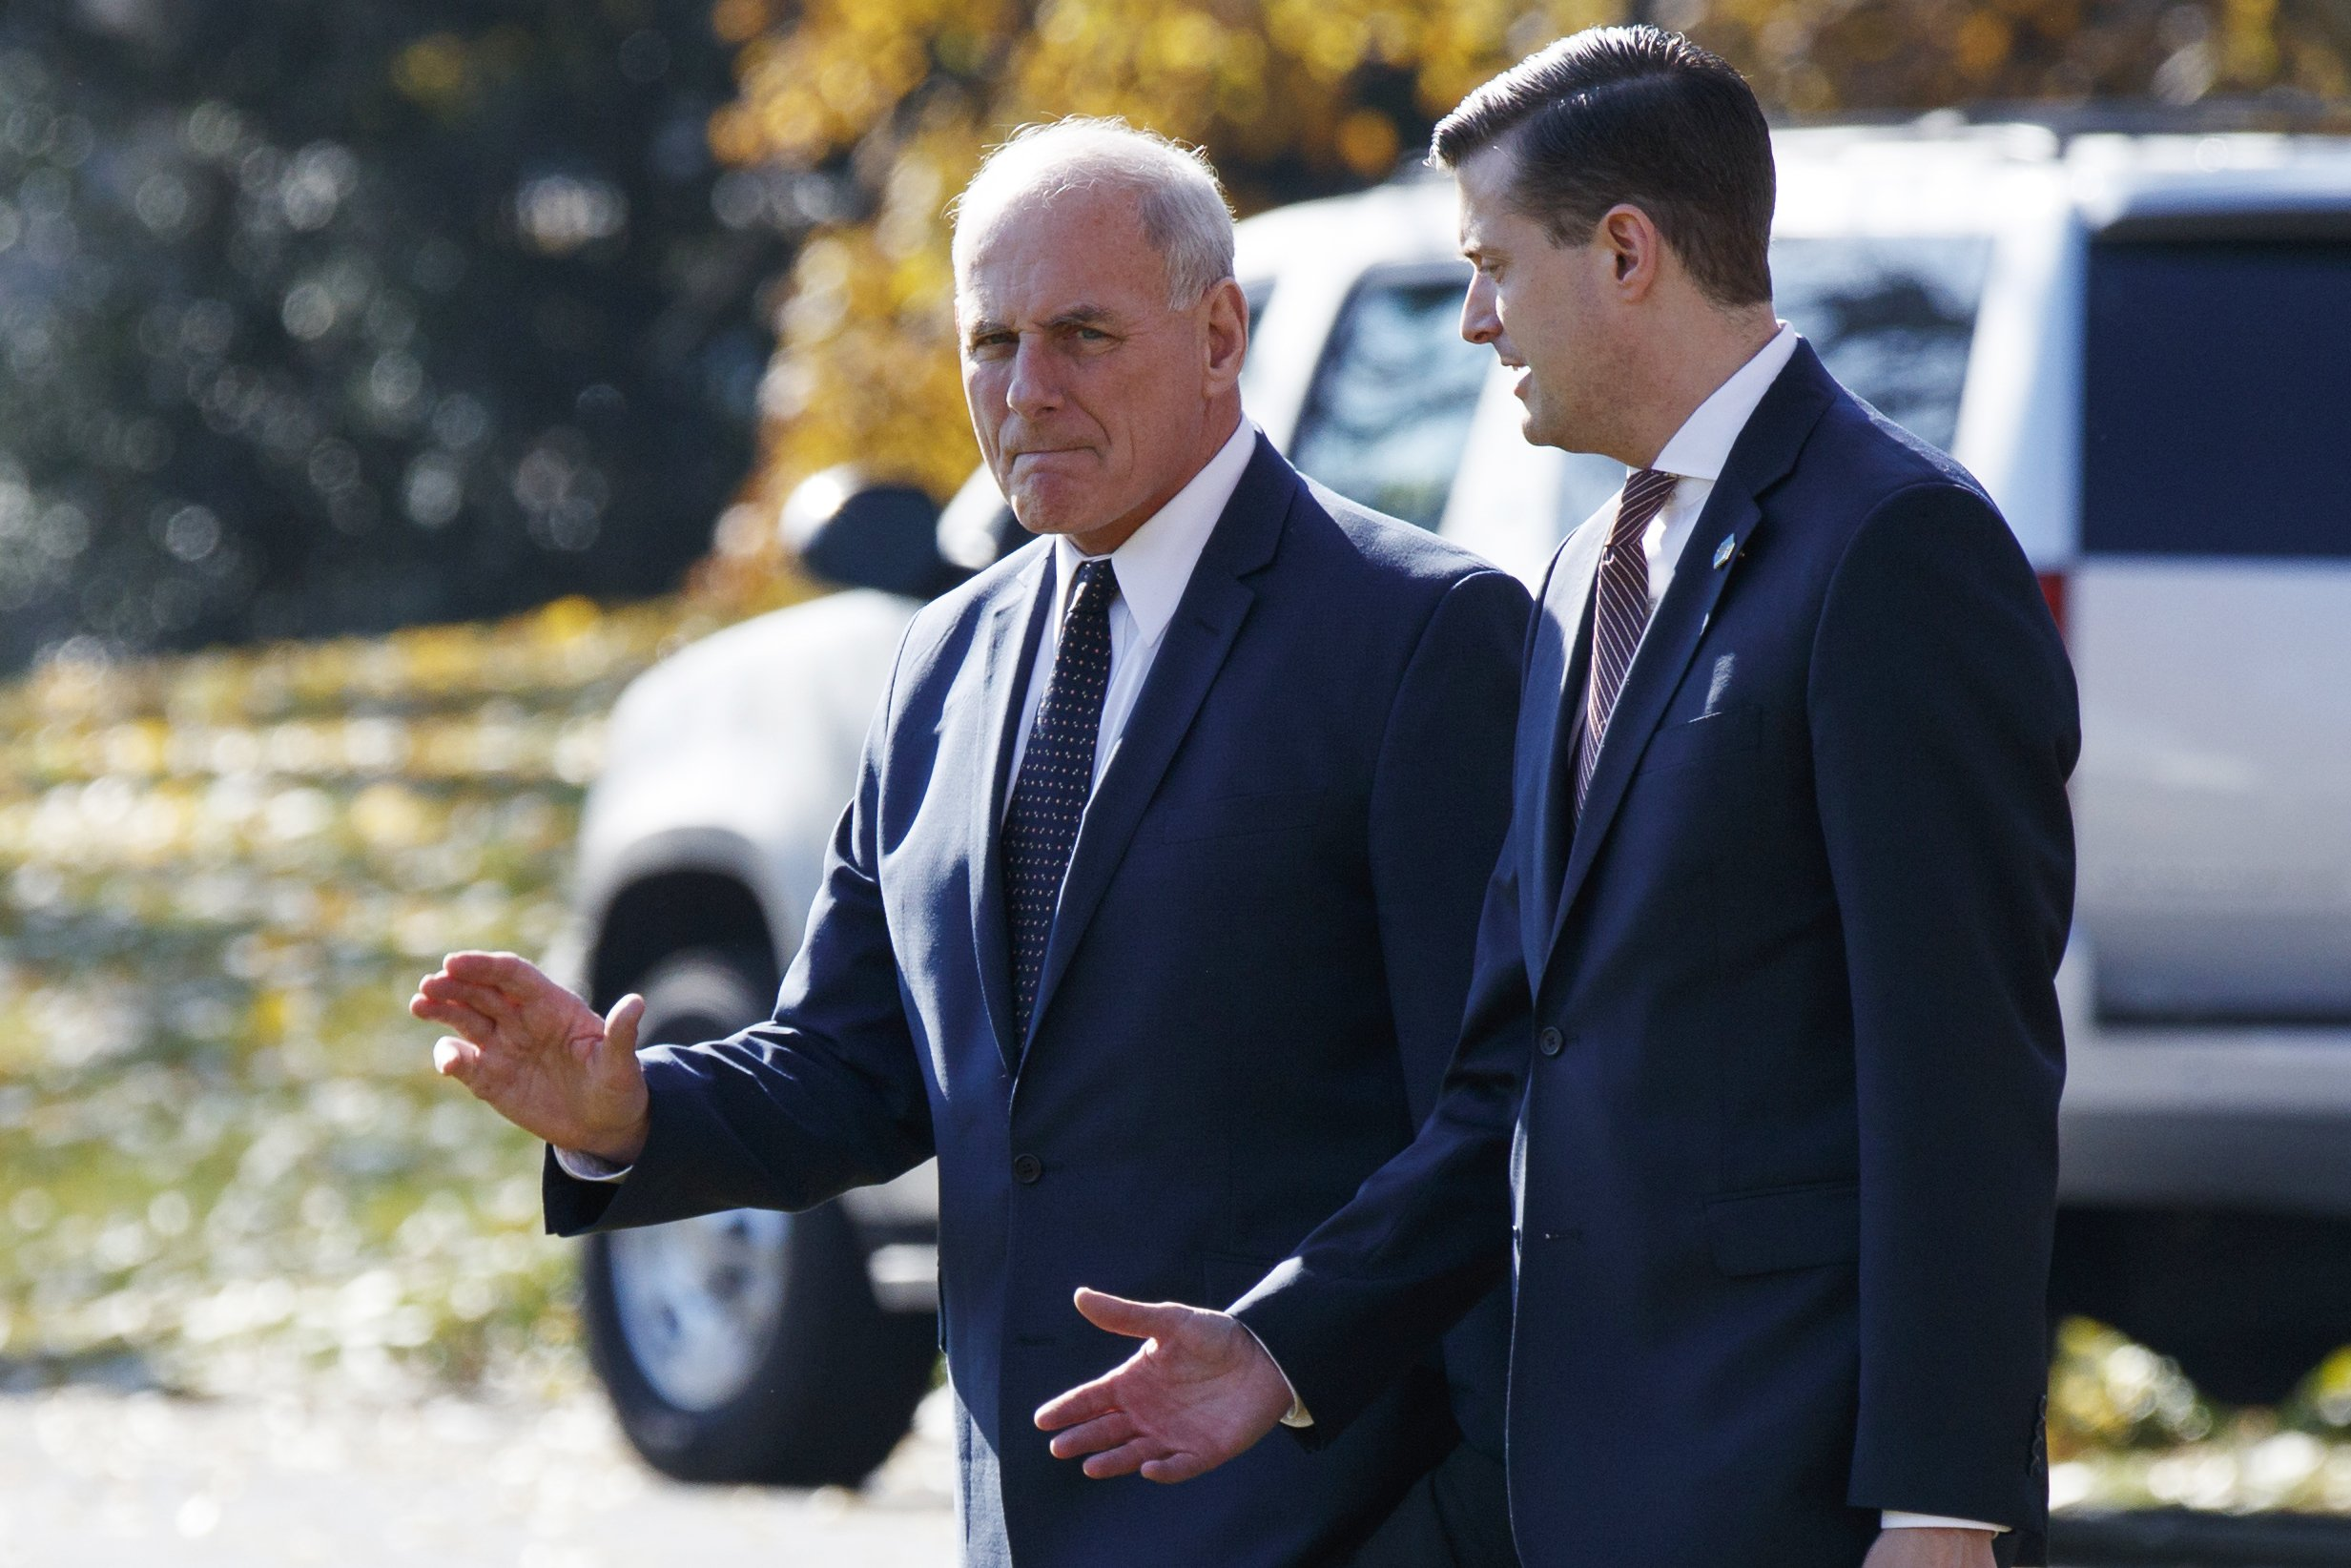 Interim security clearances are routine, but are they risky?